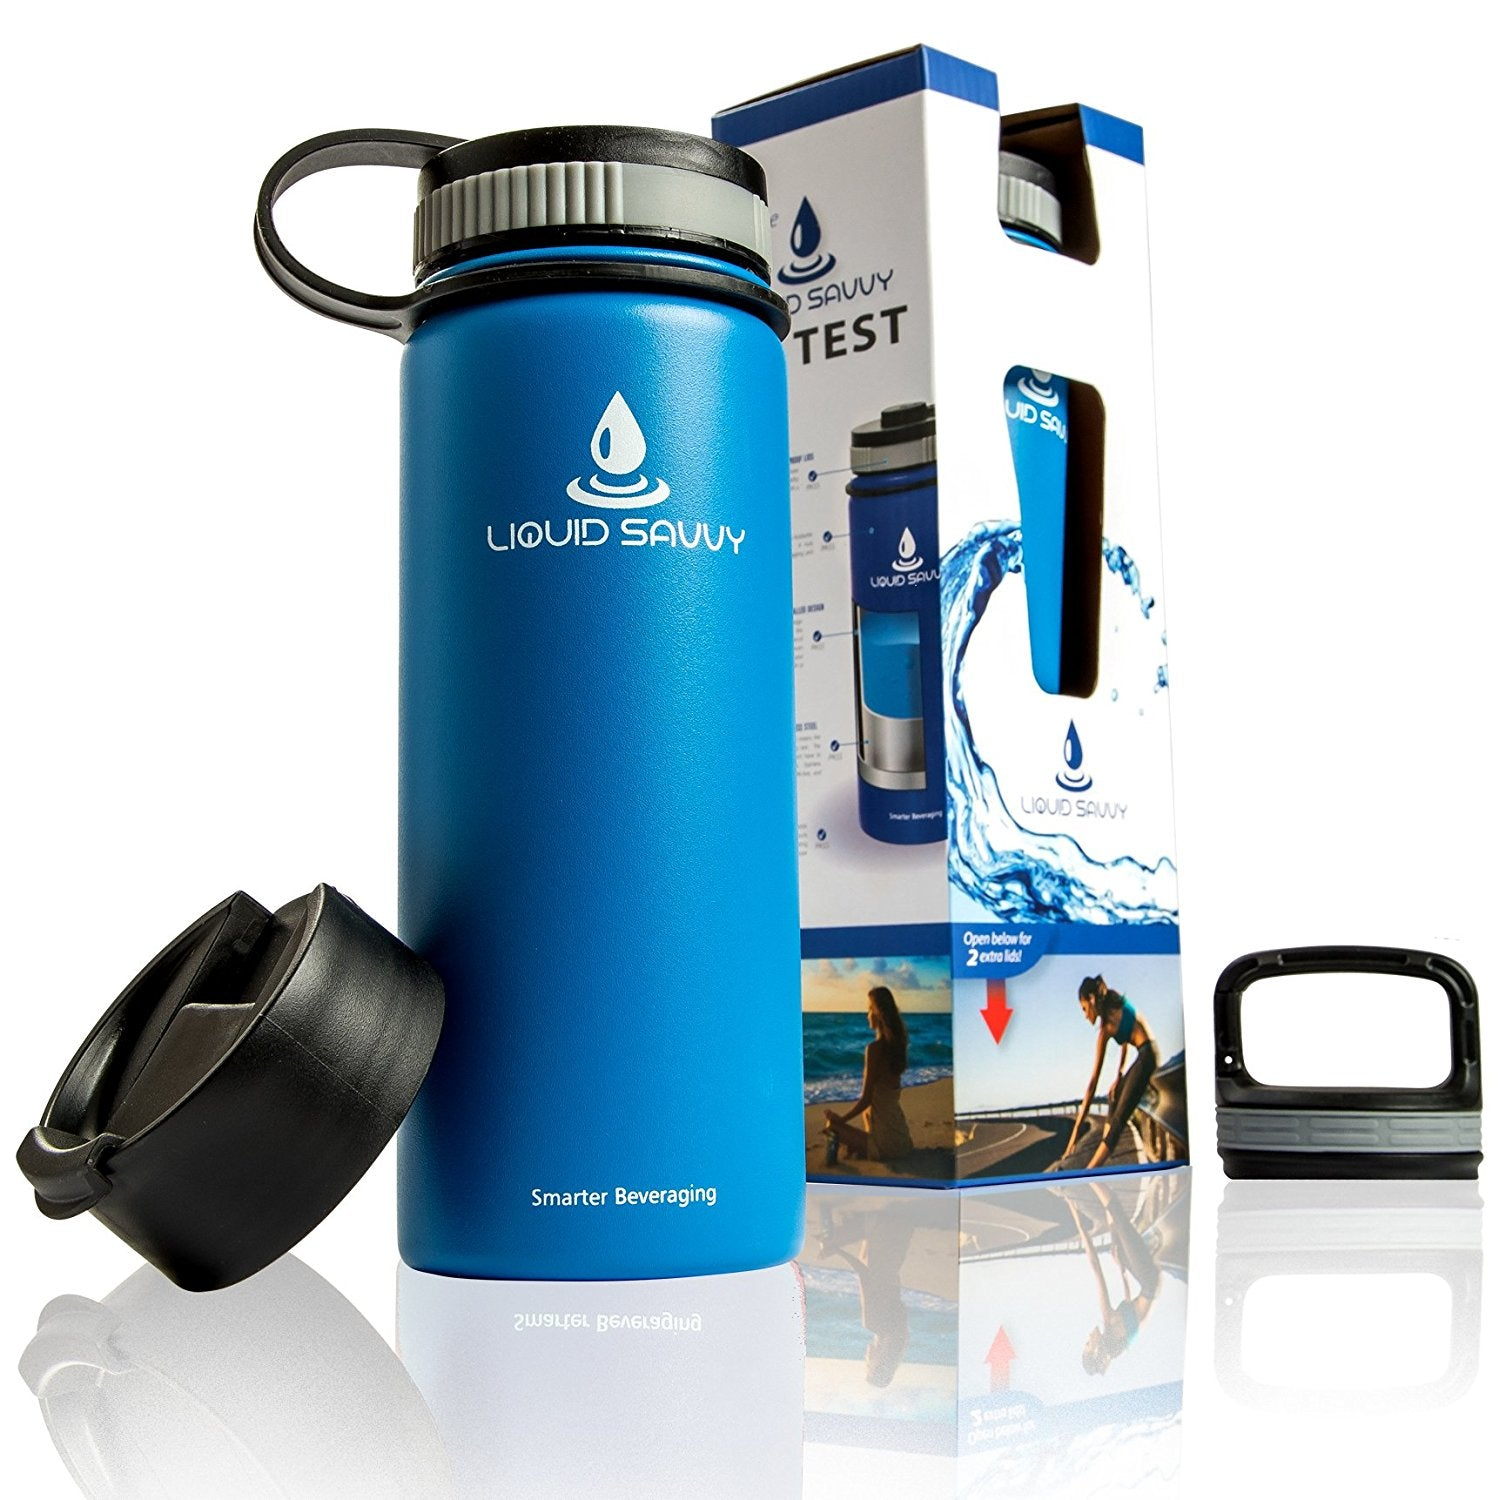 Liquid Savvy 18oz Insulated Water Bottle with 3 lids - Stainless Steel, Wide Mouth Double Walled Vacuum Insulated Bottle for Hot and Cold Beverages